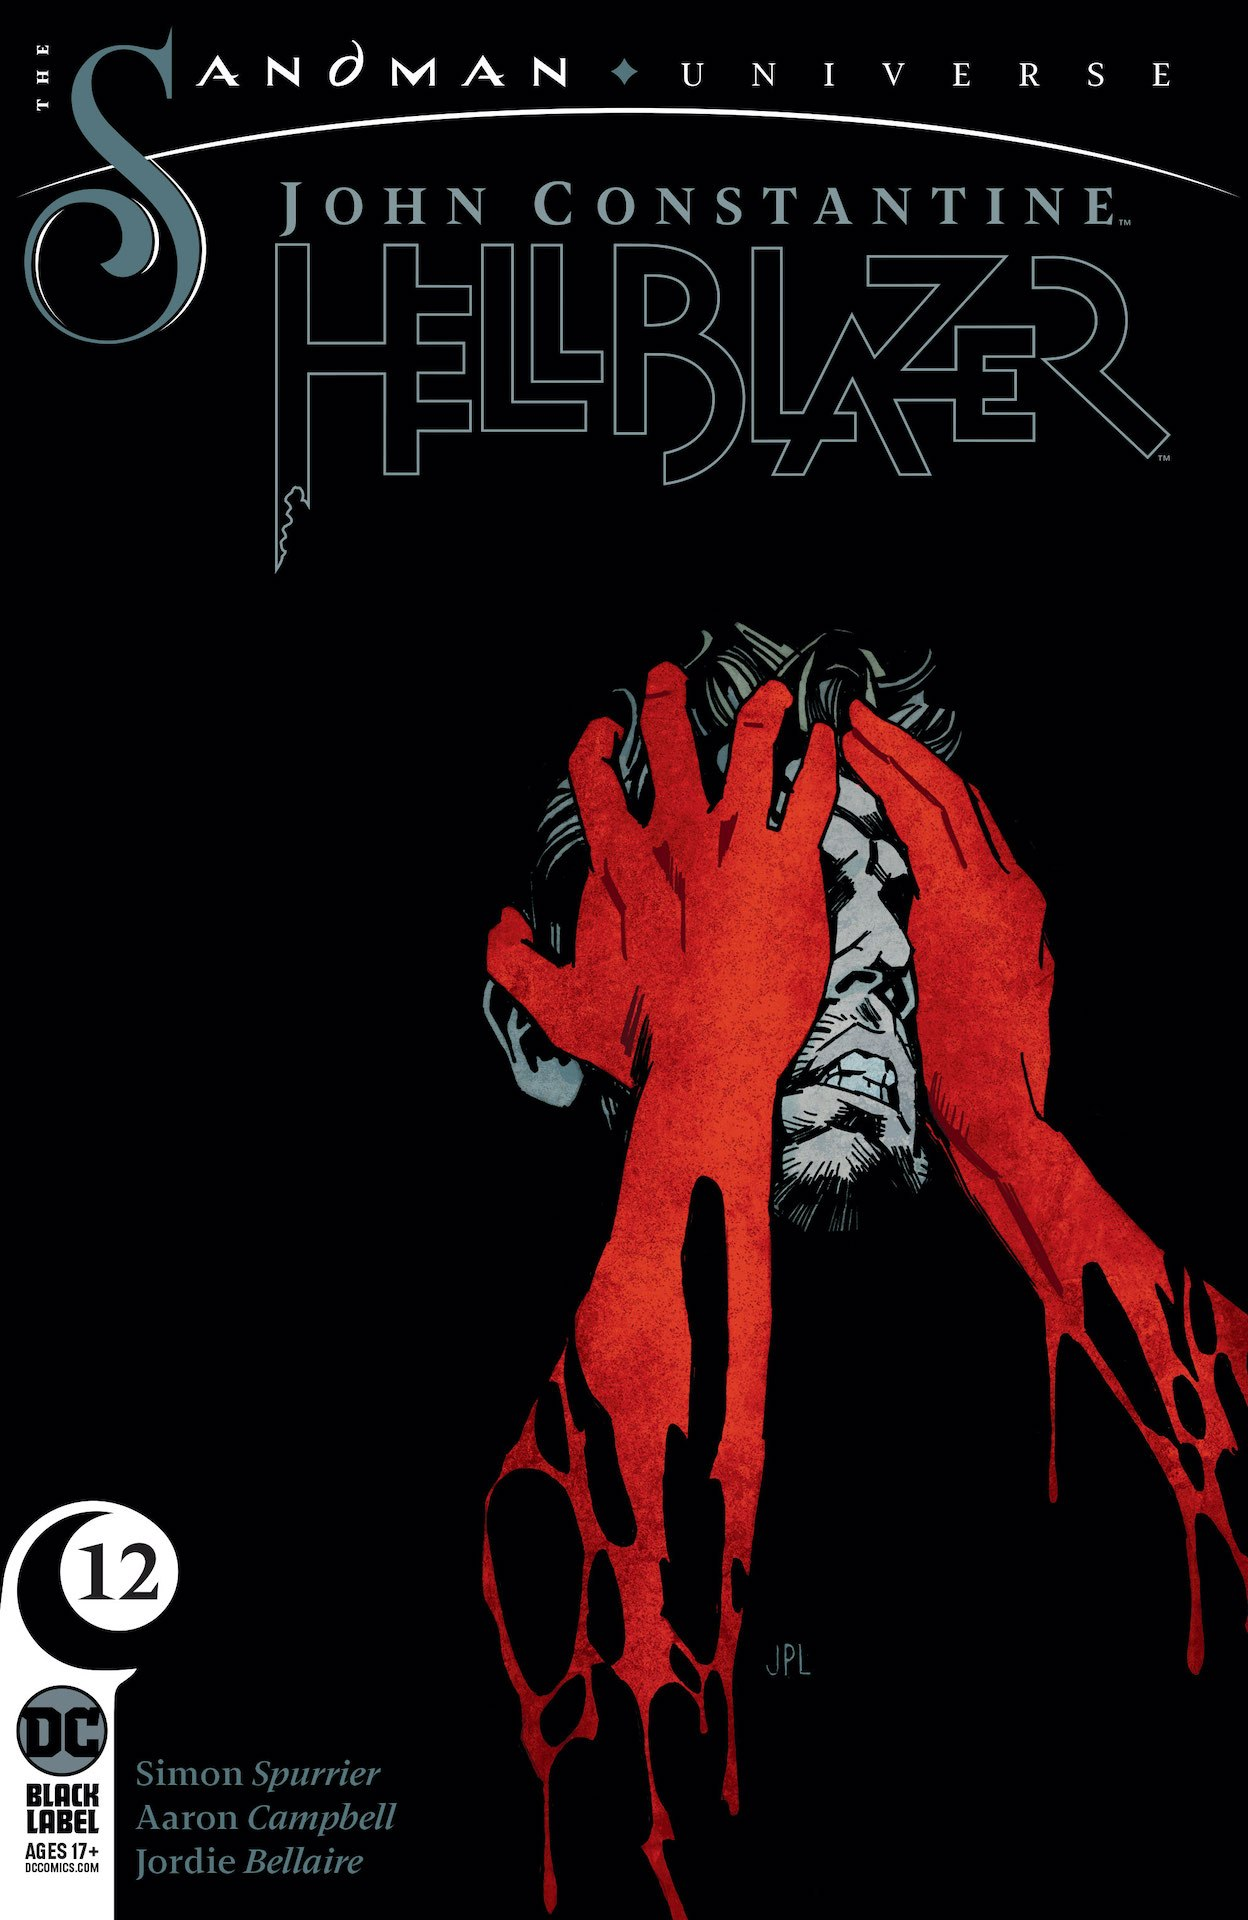 John Constantine: Hellblazer #12 preview